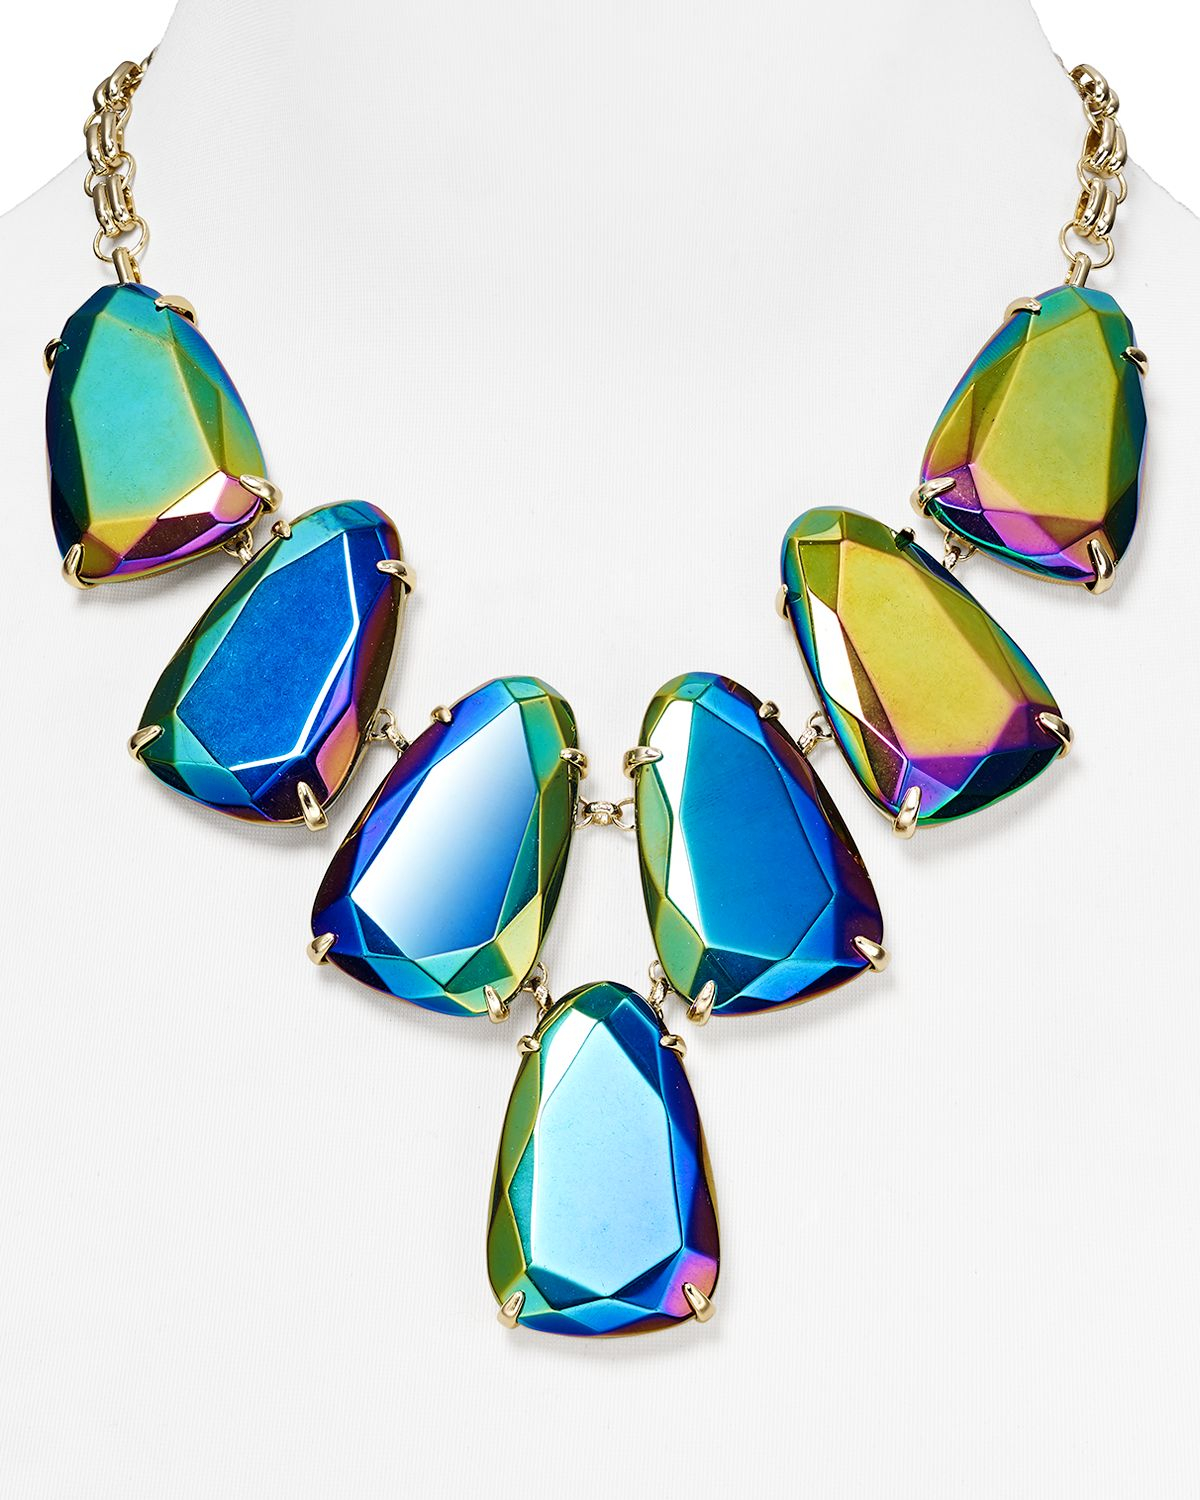 Lyst Kendra Scott Harlow Iridescent Necklace 18 in Blue